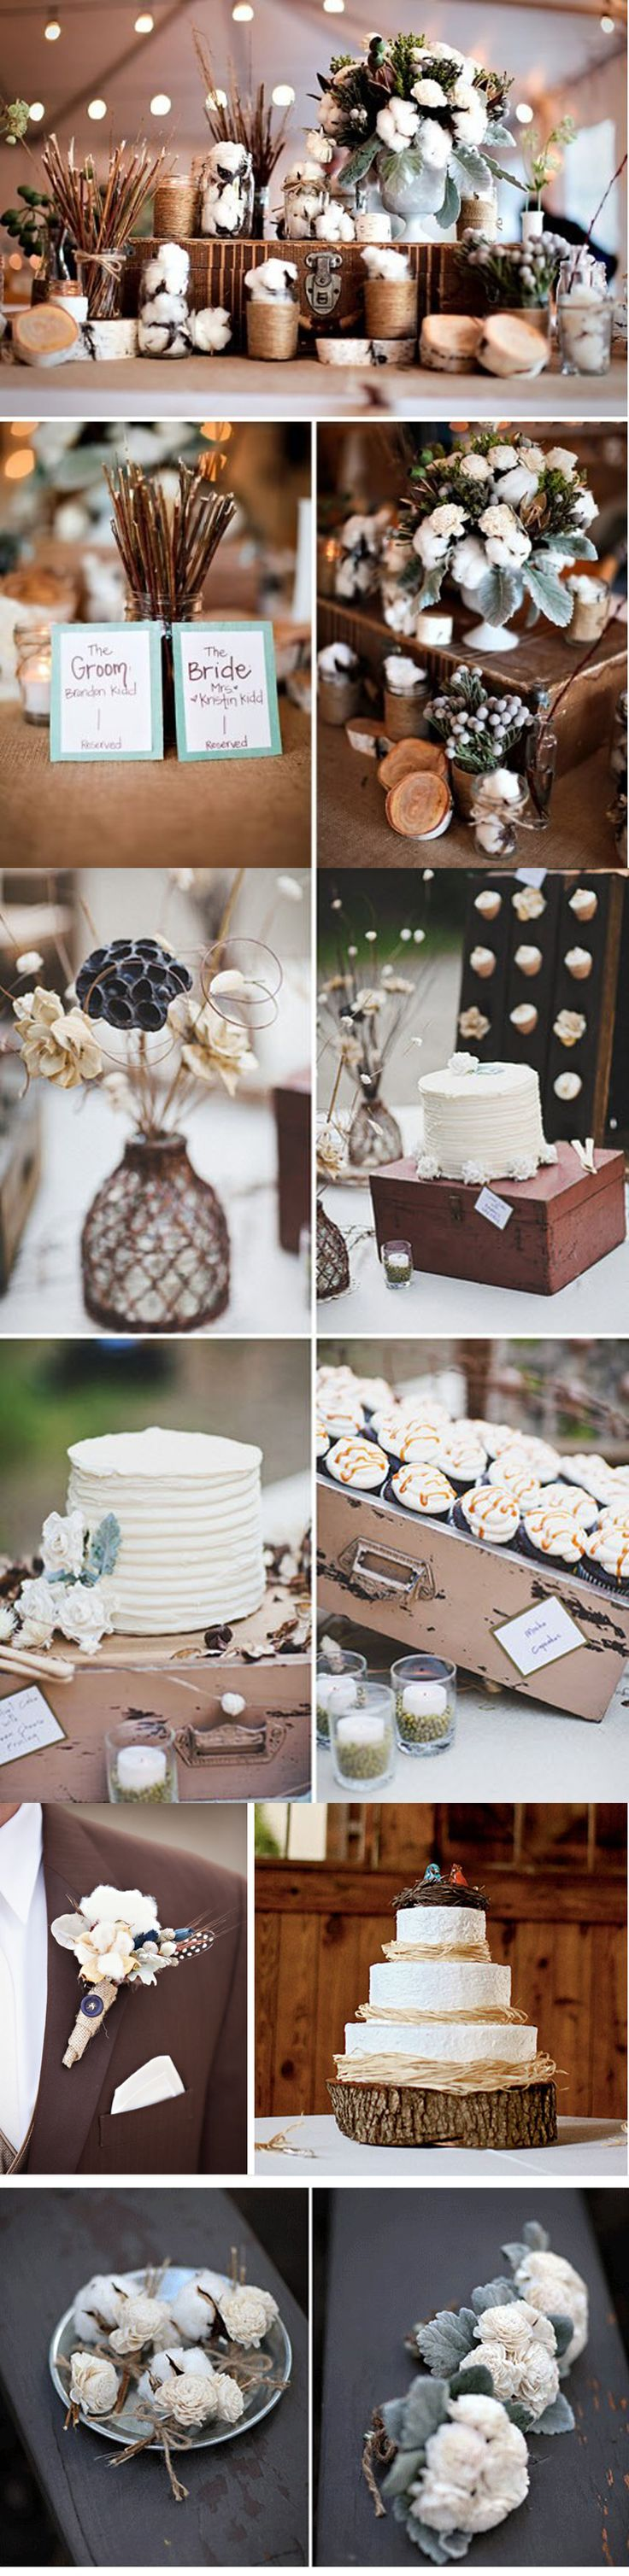 love the idea of adding the cotton; good ideas for my lil country wedding